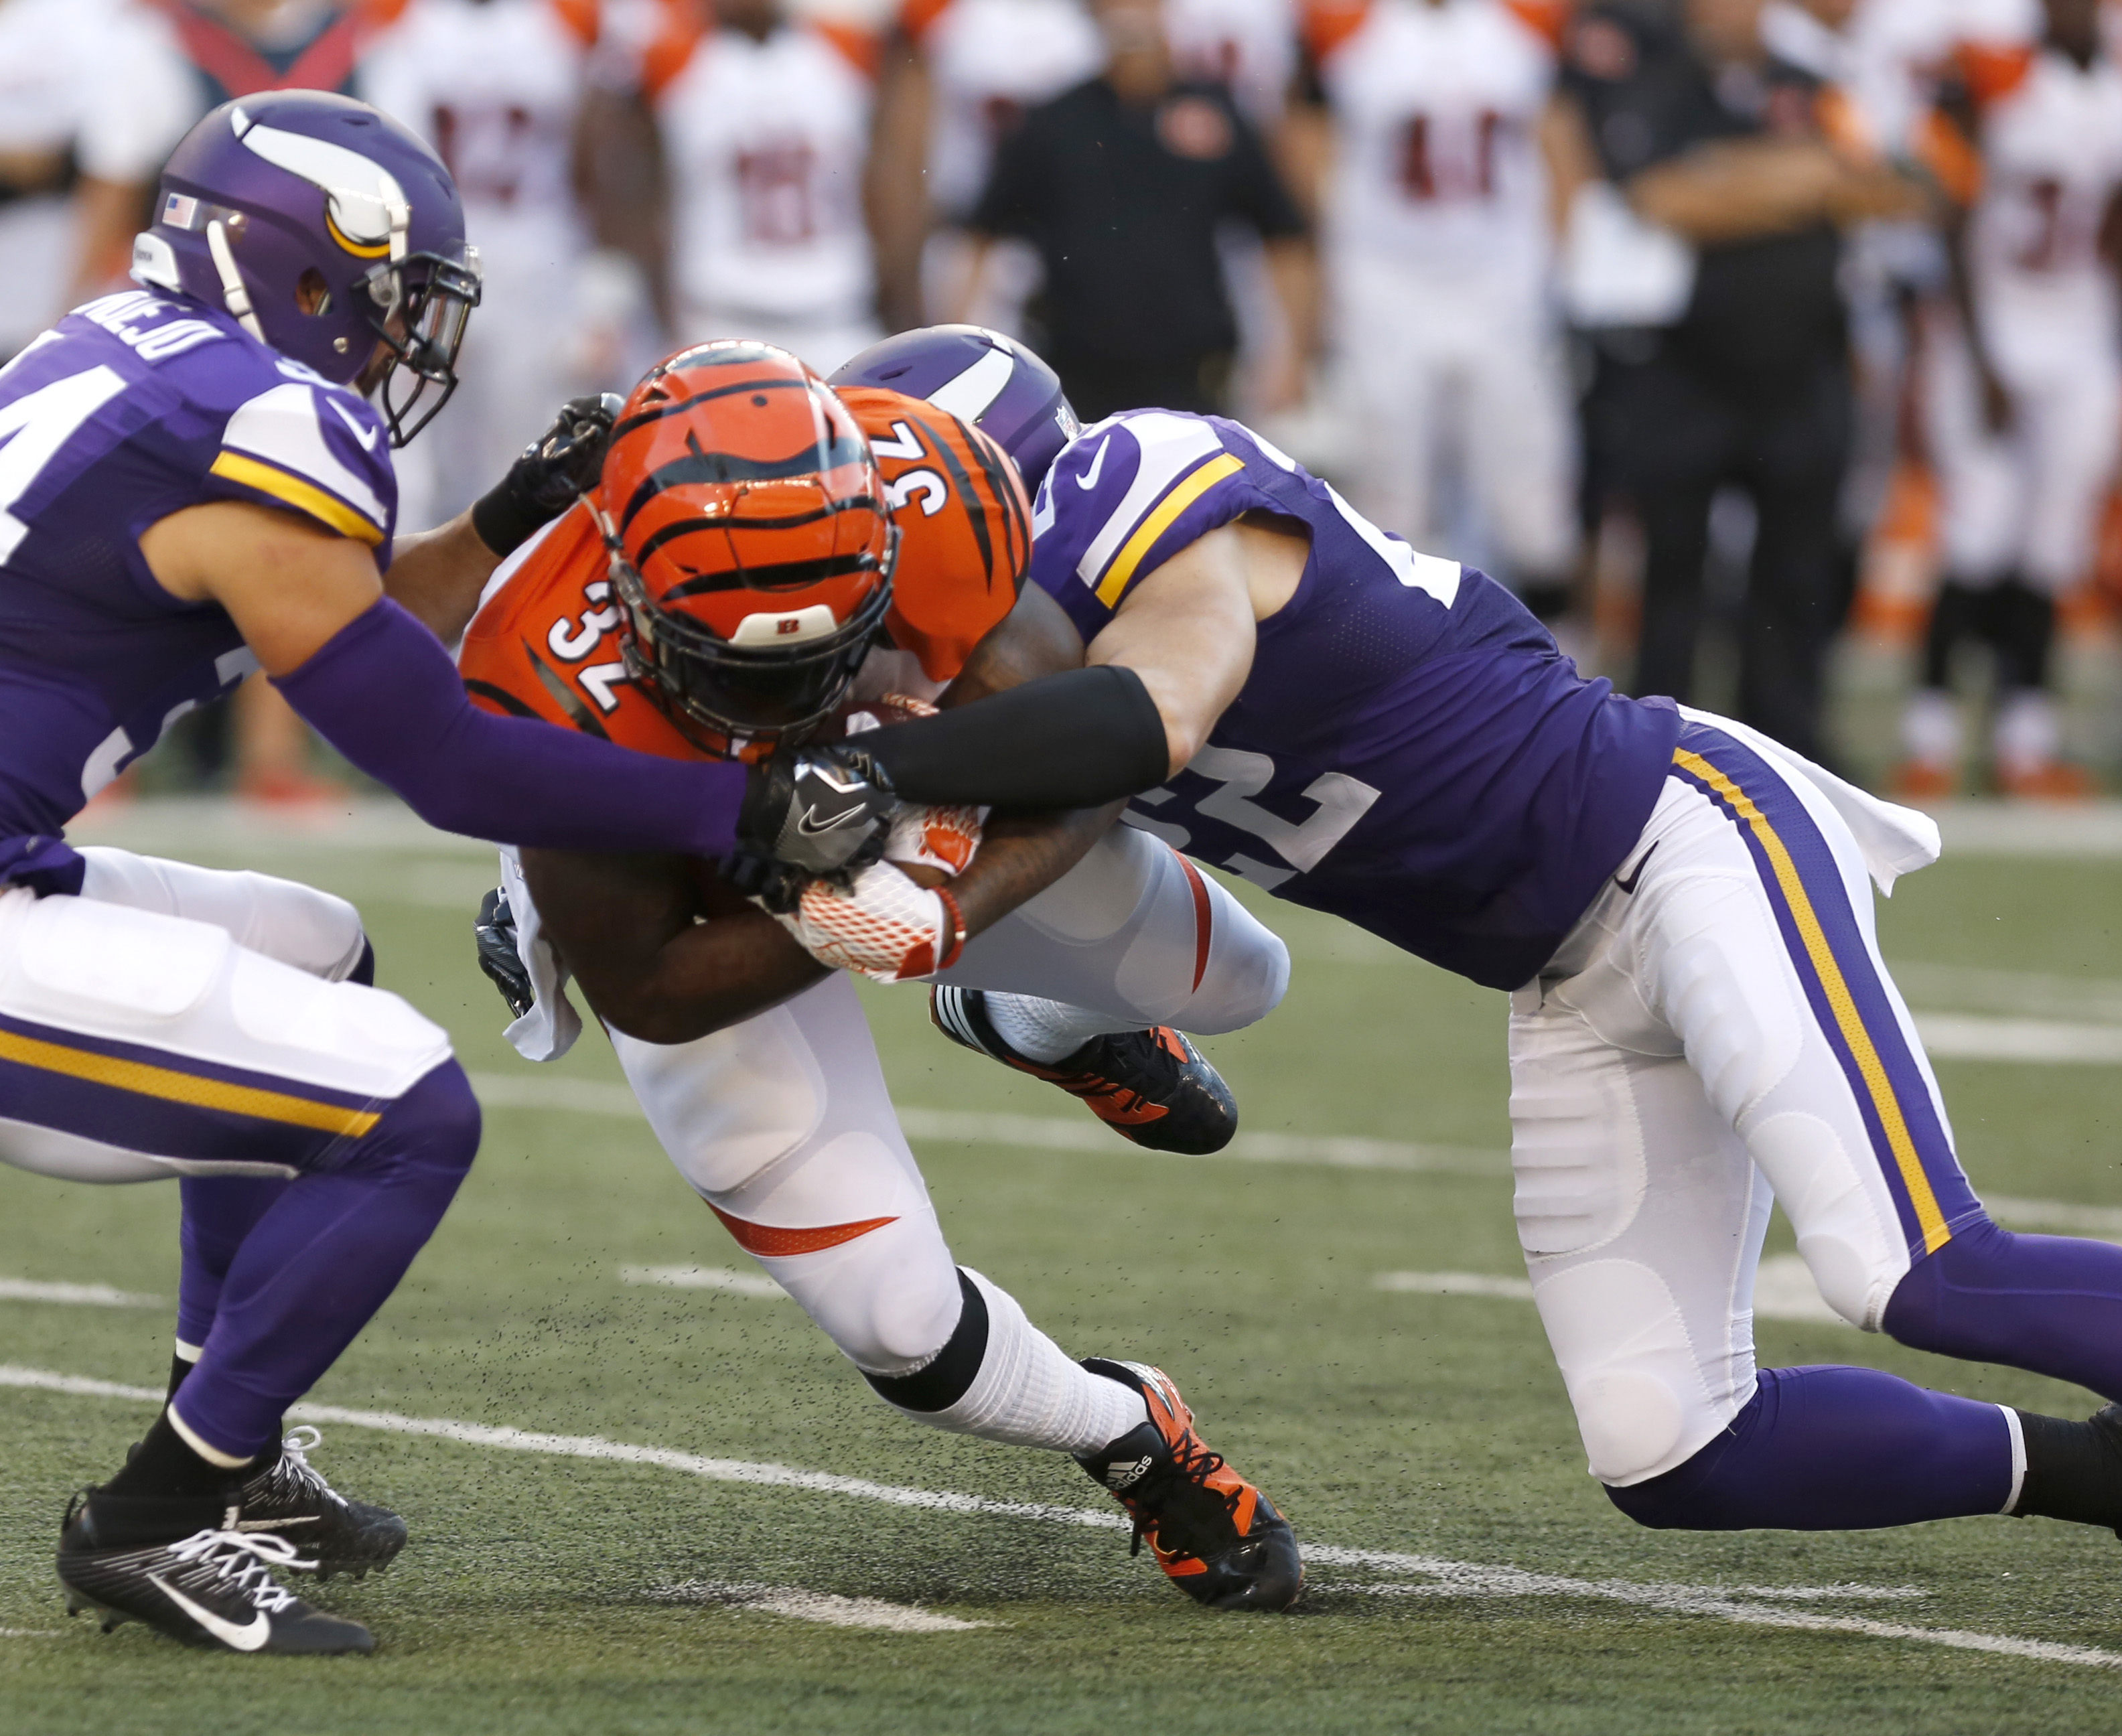 9453772-nfl-preseason-minnesota-vikings-at-cincinnati-bengals